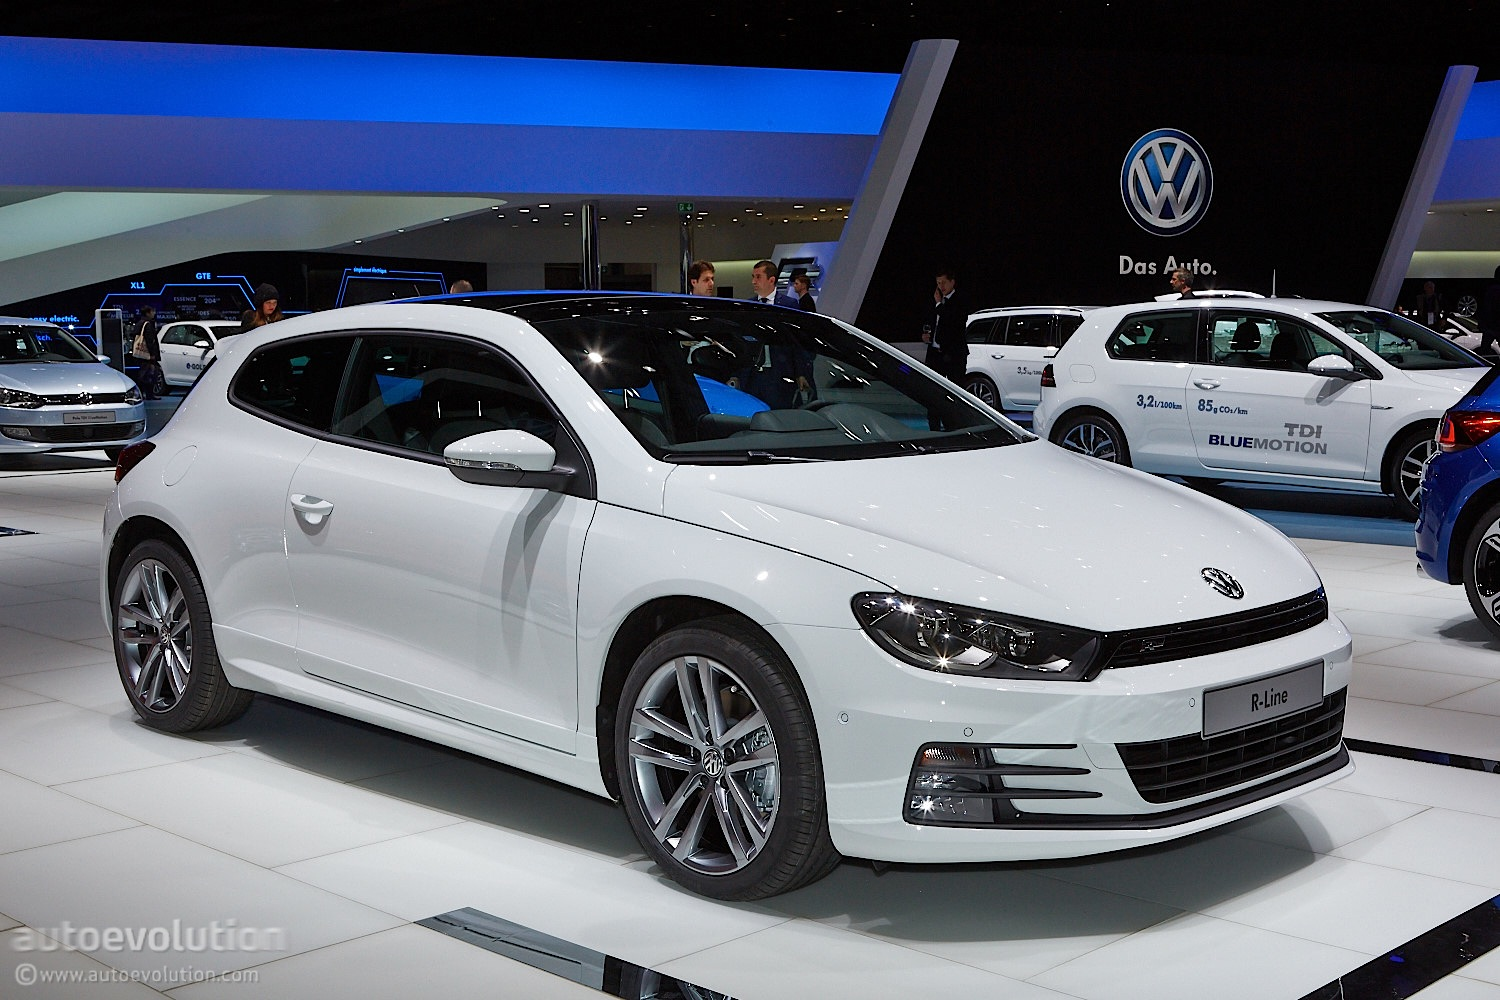 volkswagen pulls the plug on the scirocco mk4 reportedly in the offing as an ev autoevolution. Black Bedroom Furniture Sets. Home Design Ideas